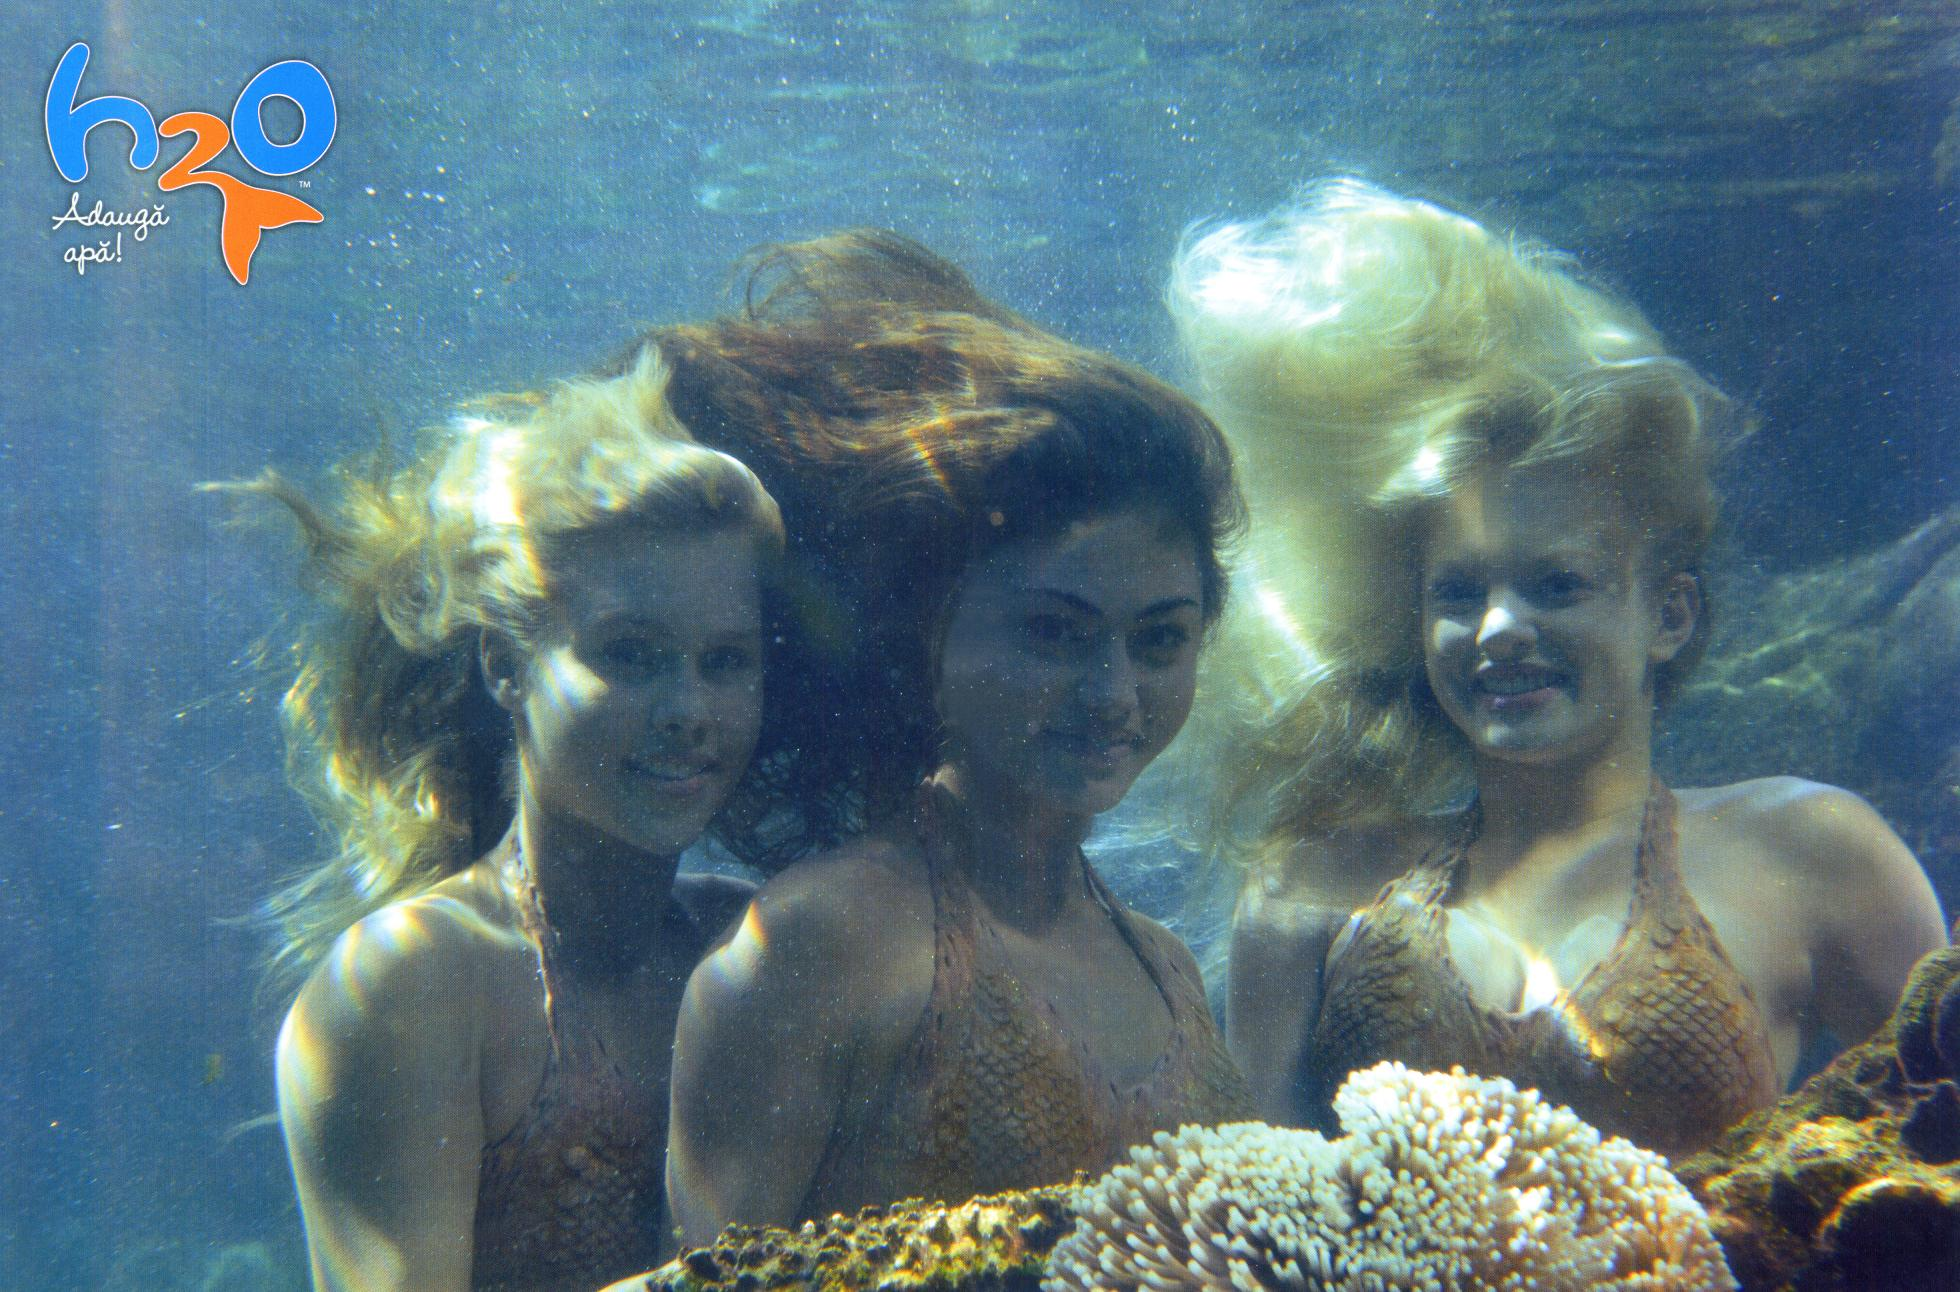 H2o Mermaids Images | FemaleCelebrity